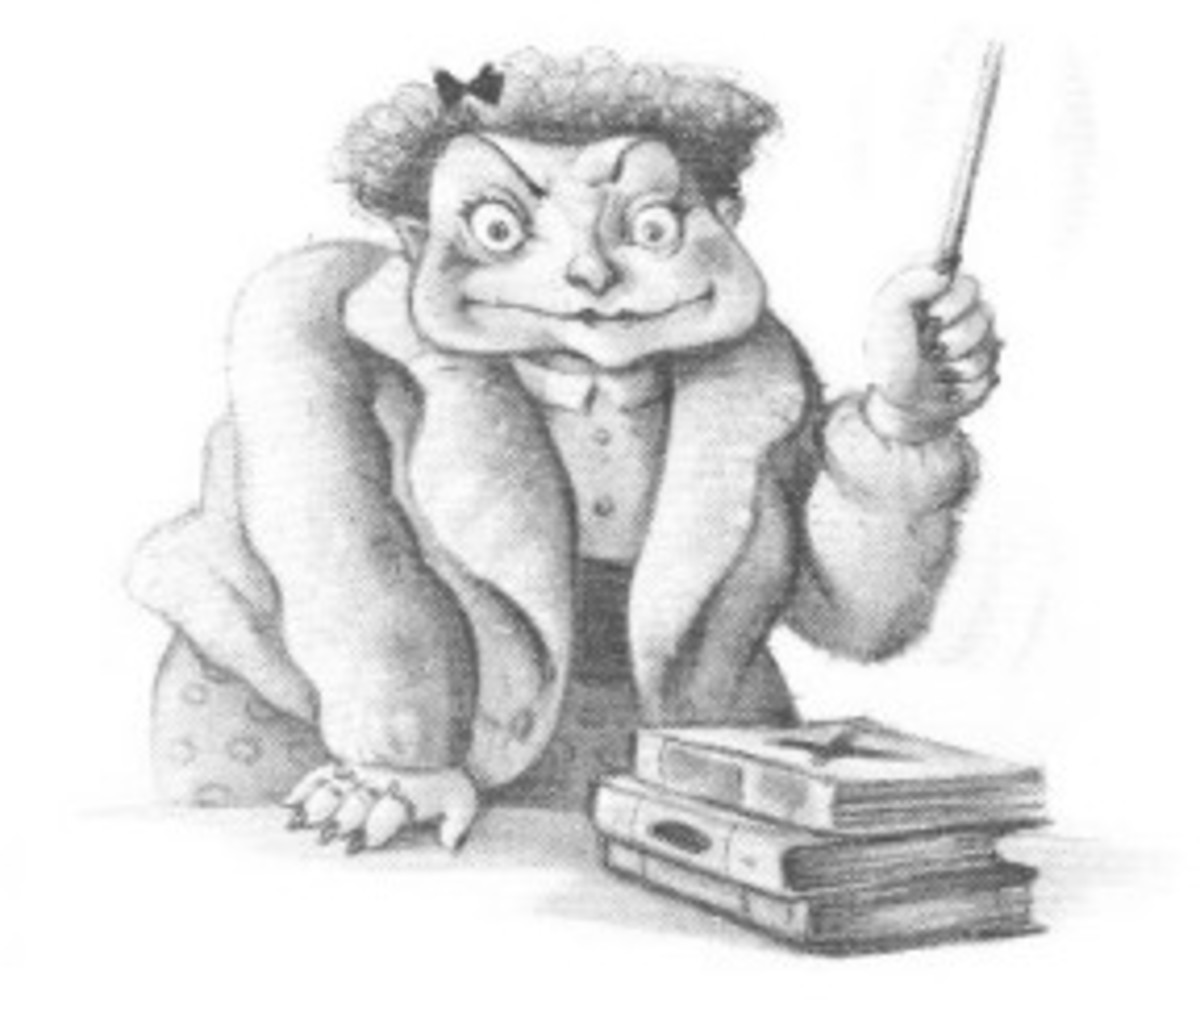 How Umbridge was portrayed in the book (the movie was too kind to her).